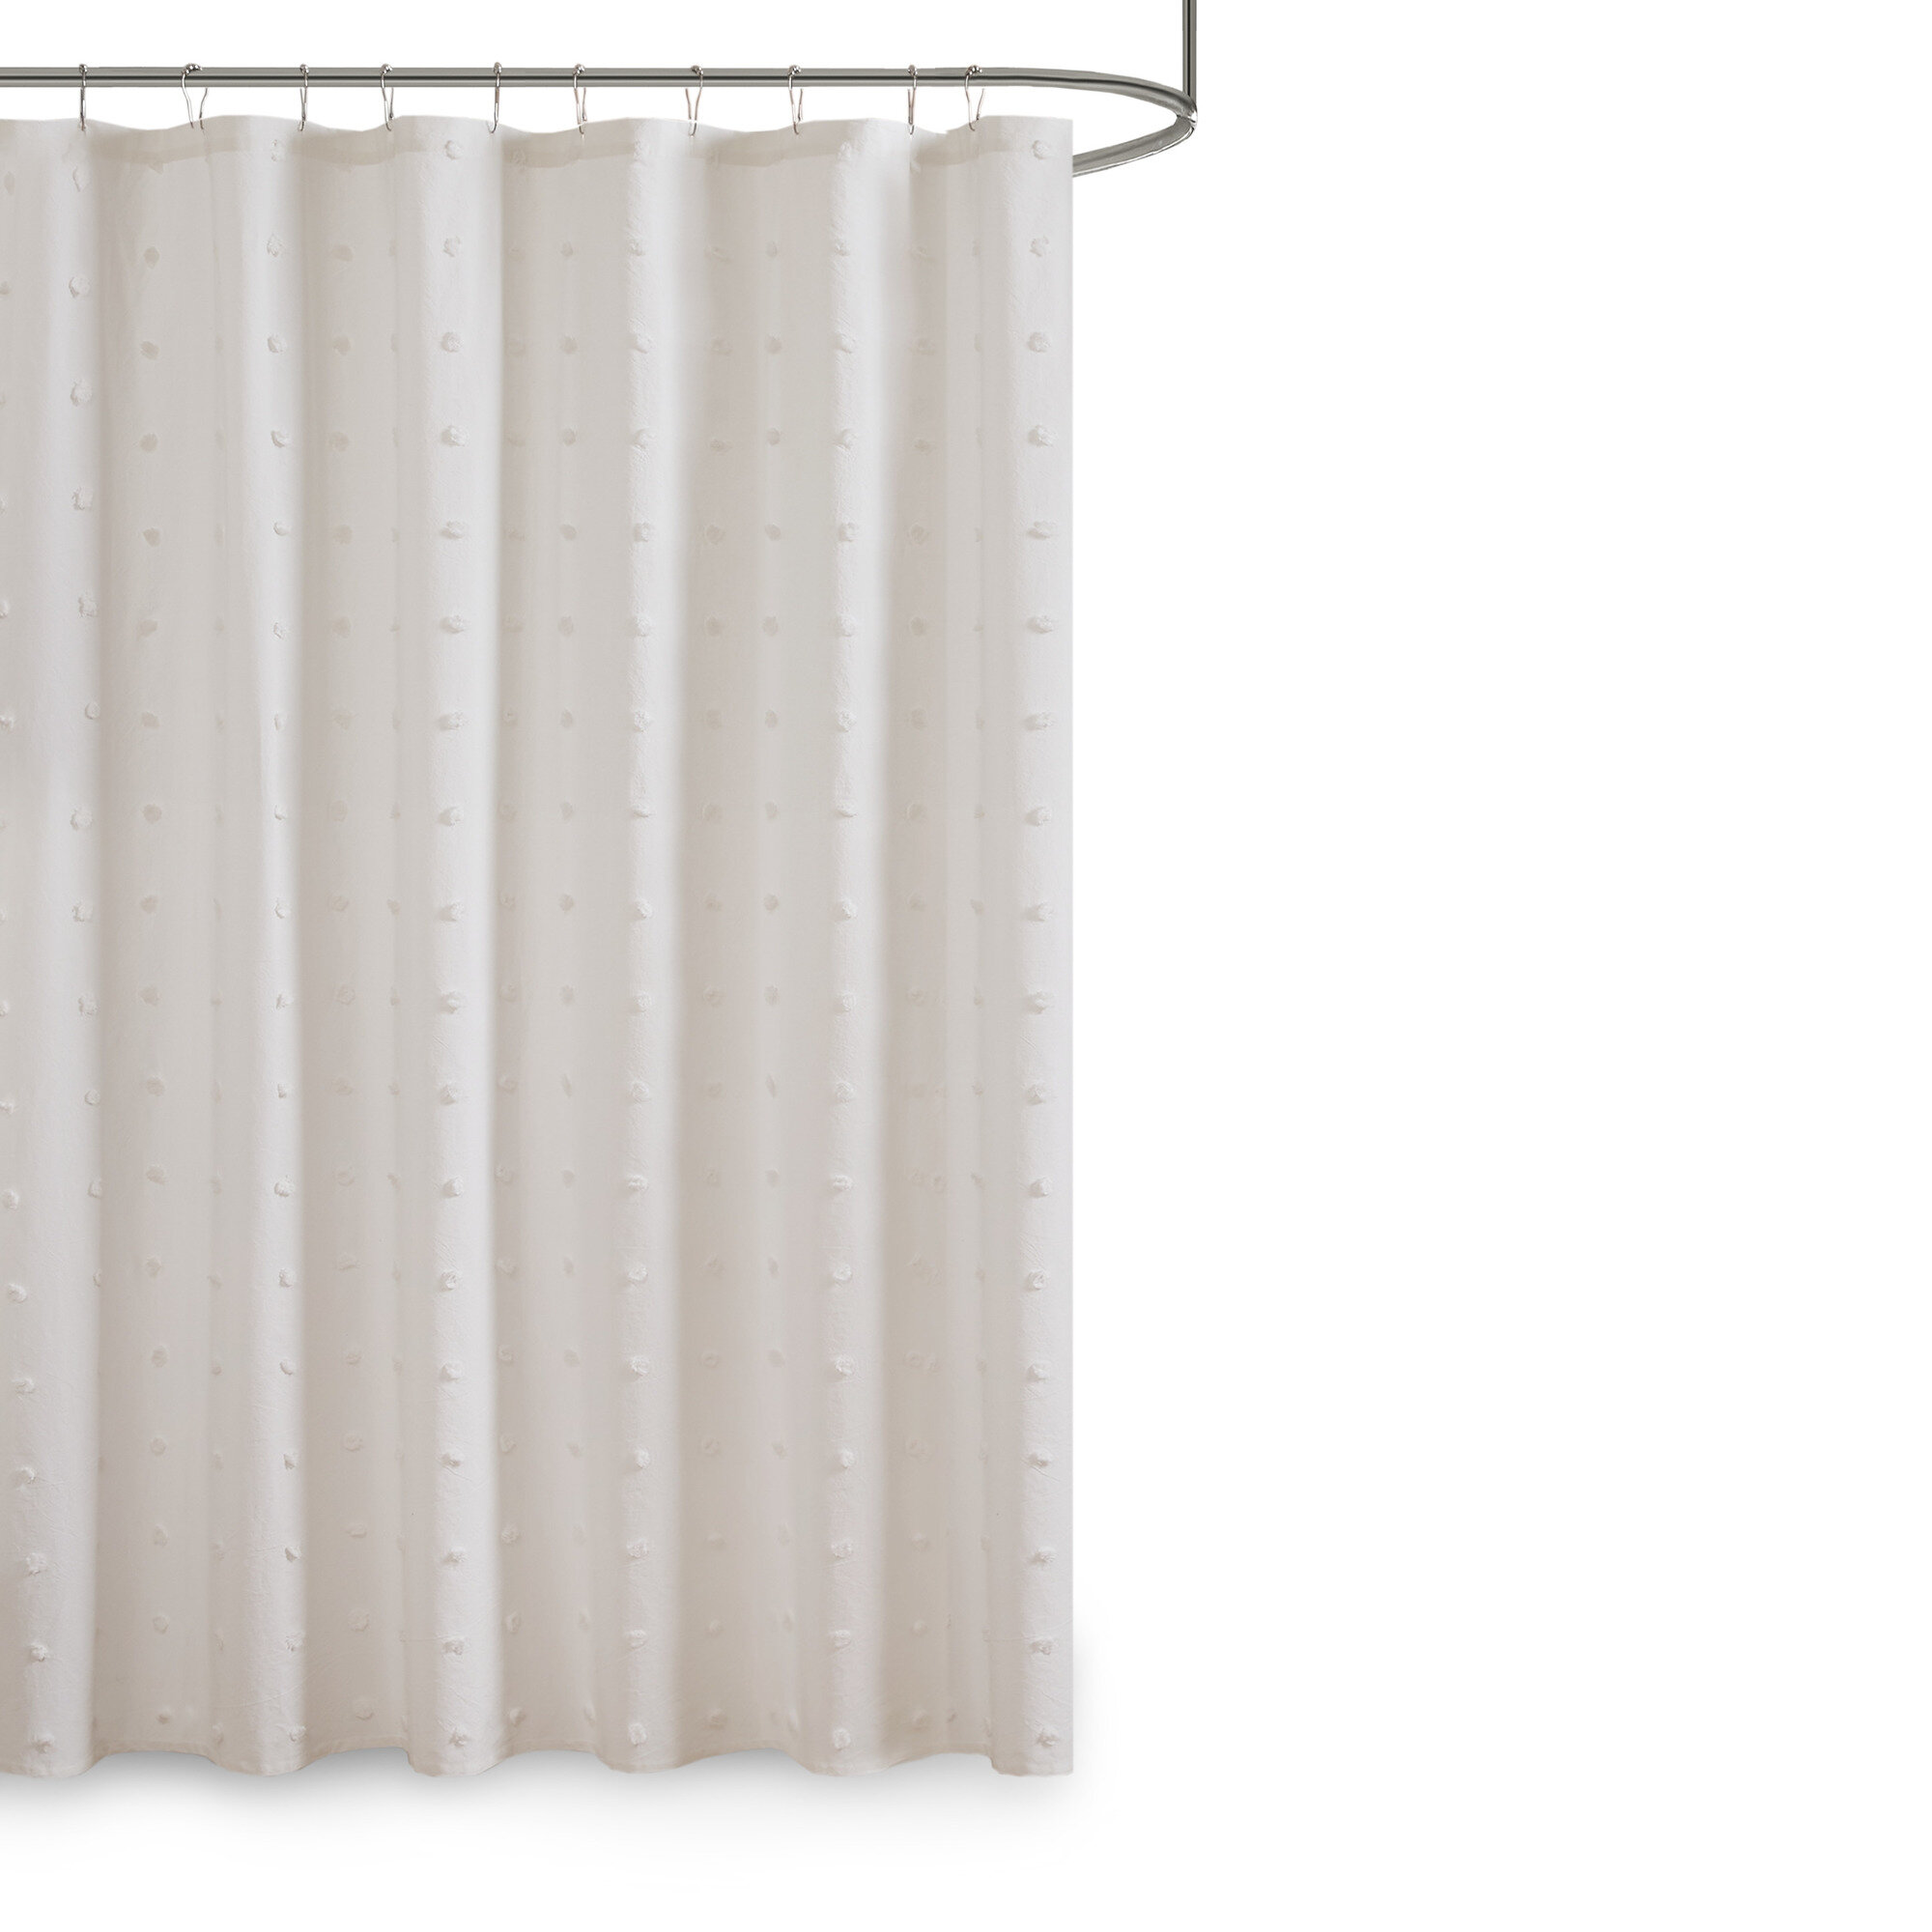 Mdesign Shower Curtain Easy Clean Shower And Bath Curtain